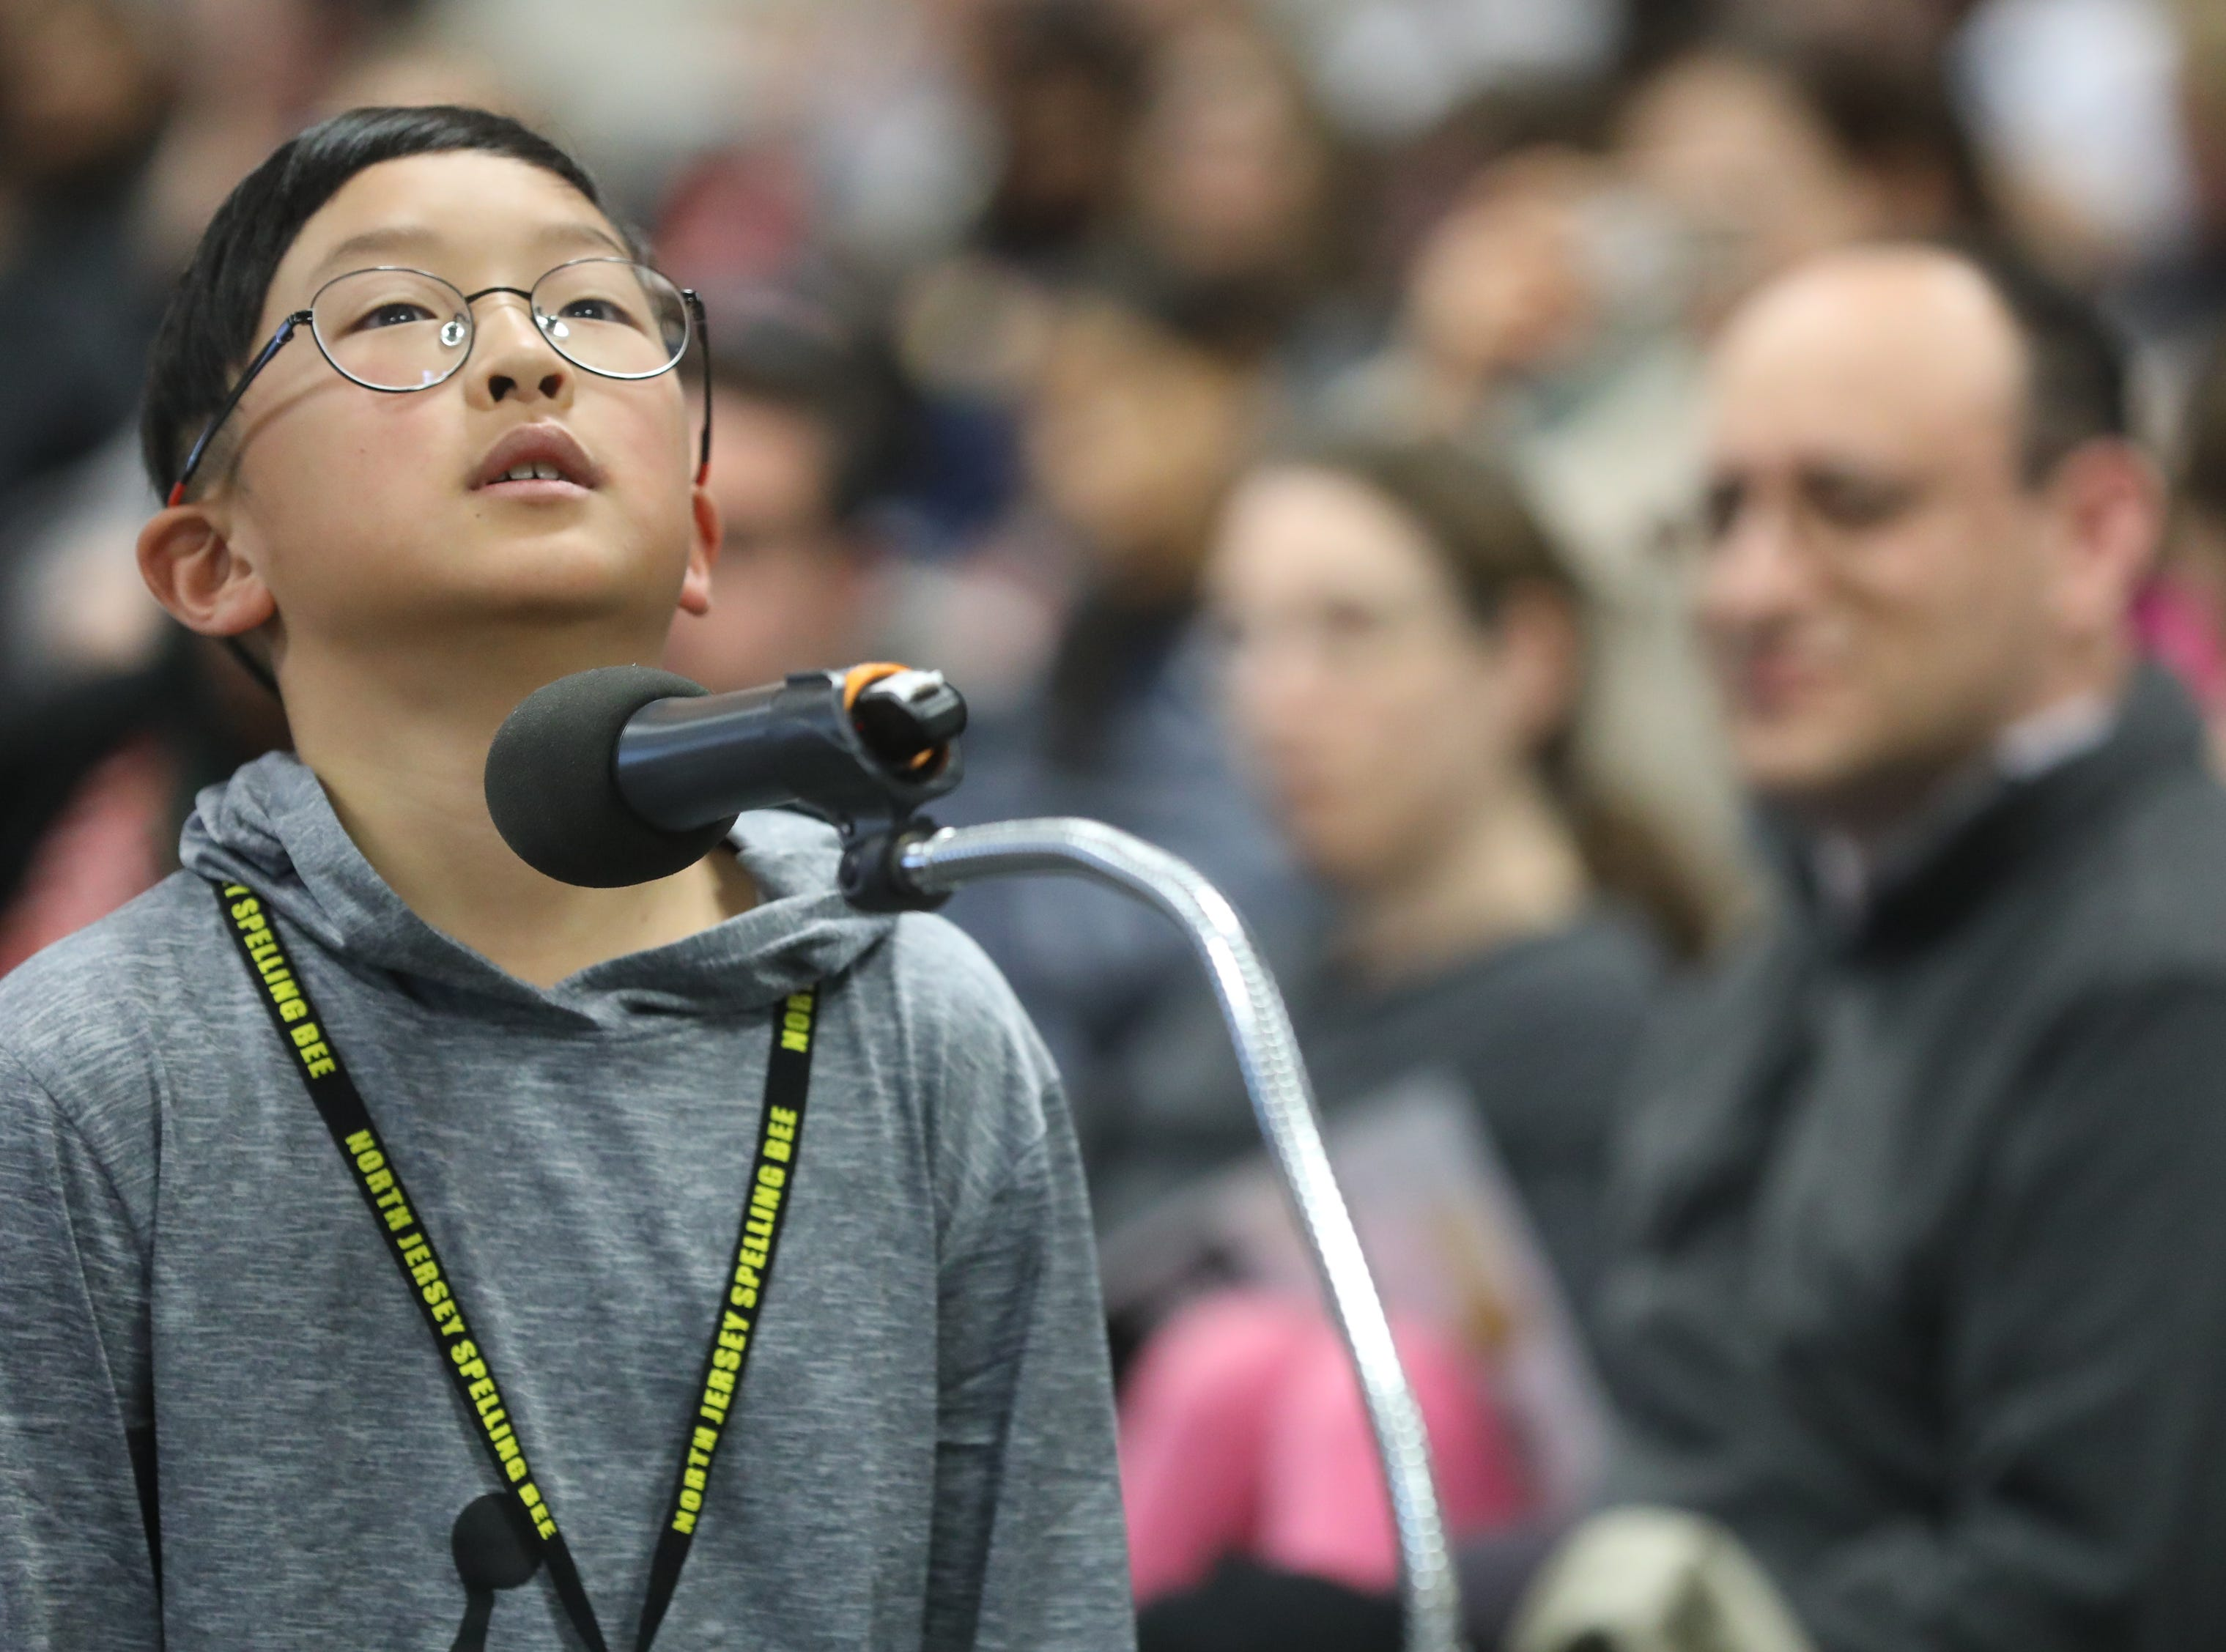 Jay Ahn, of Ridgewood, competes in the first round of the 2019 North Jersey Spelling Bee, in Paramus. Thursday, March 14, 2019